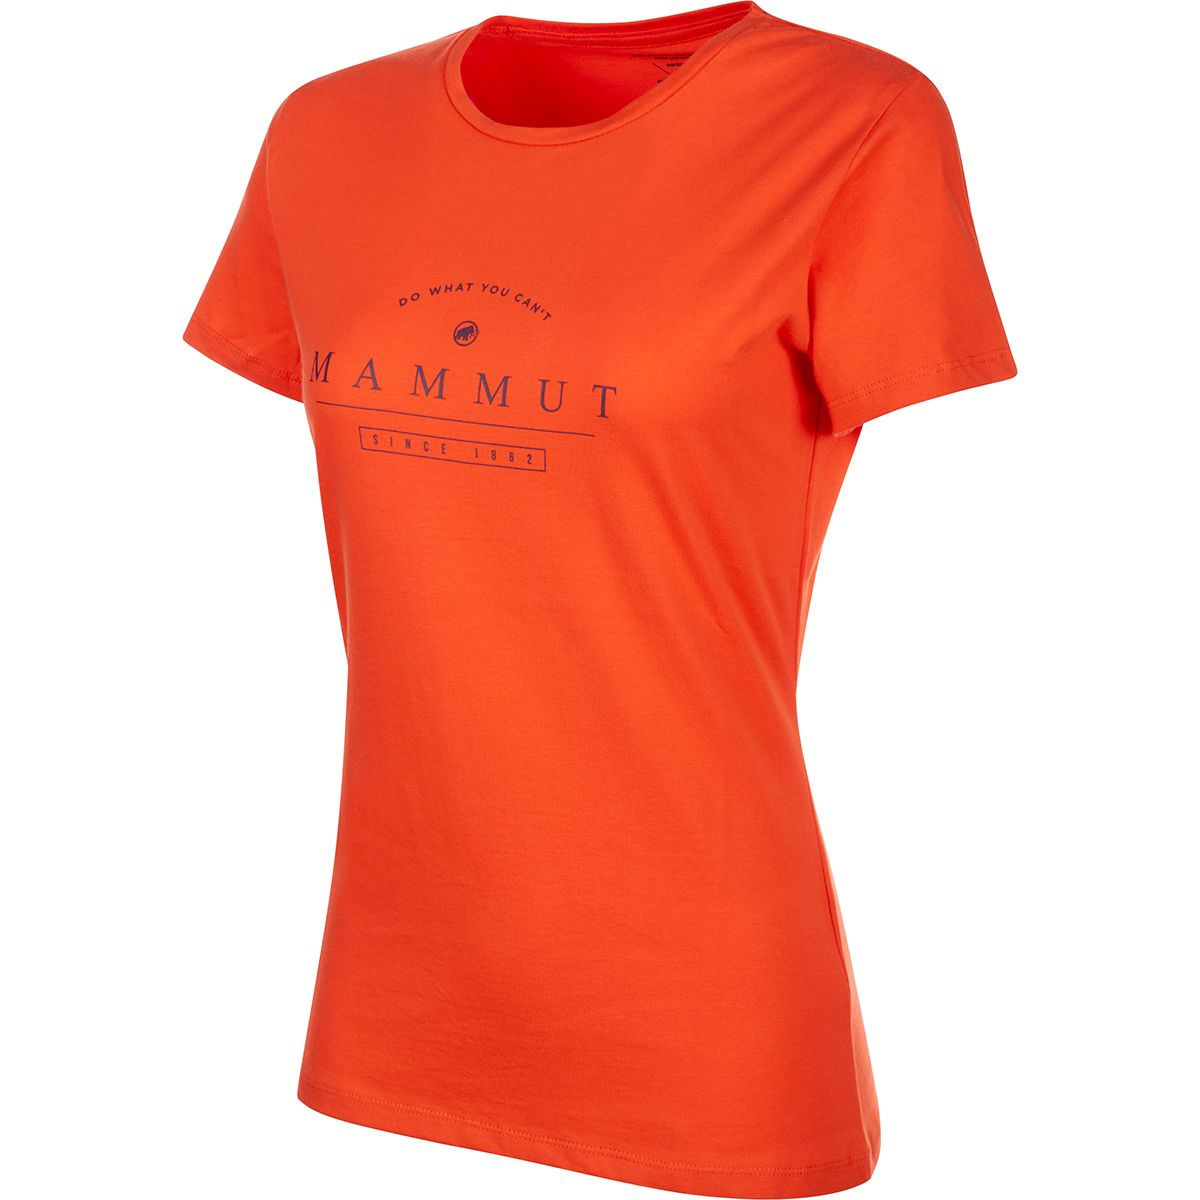 Mammut Damen Seile T-Shirt (Größe S, Orange) | T-Shirts Freizeit > Damen